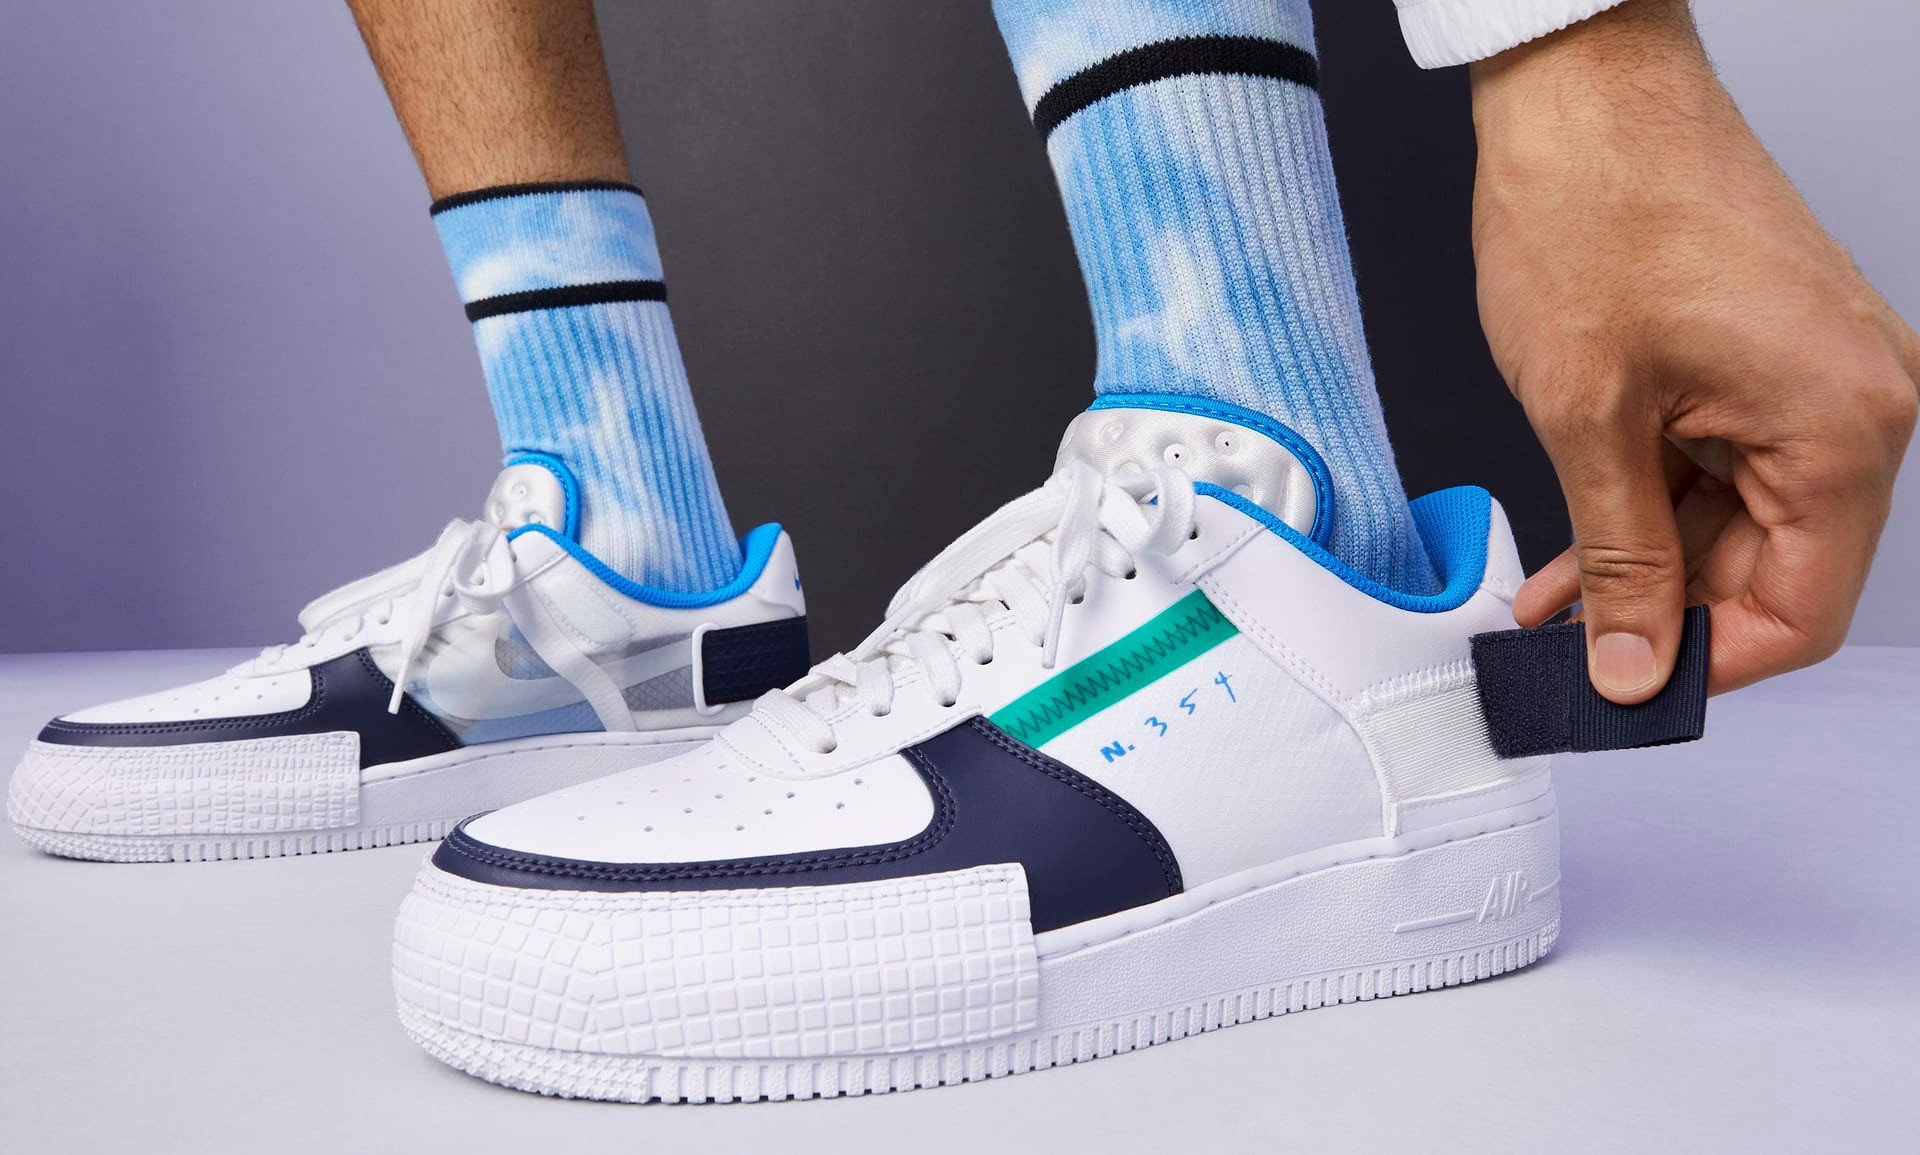 Nike Air Force 1 Type White Obsidian CQ2344-100